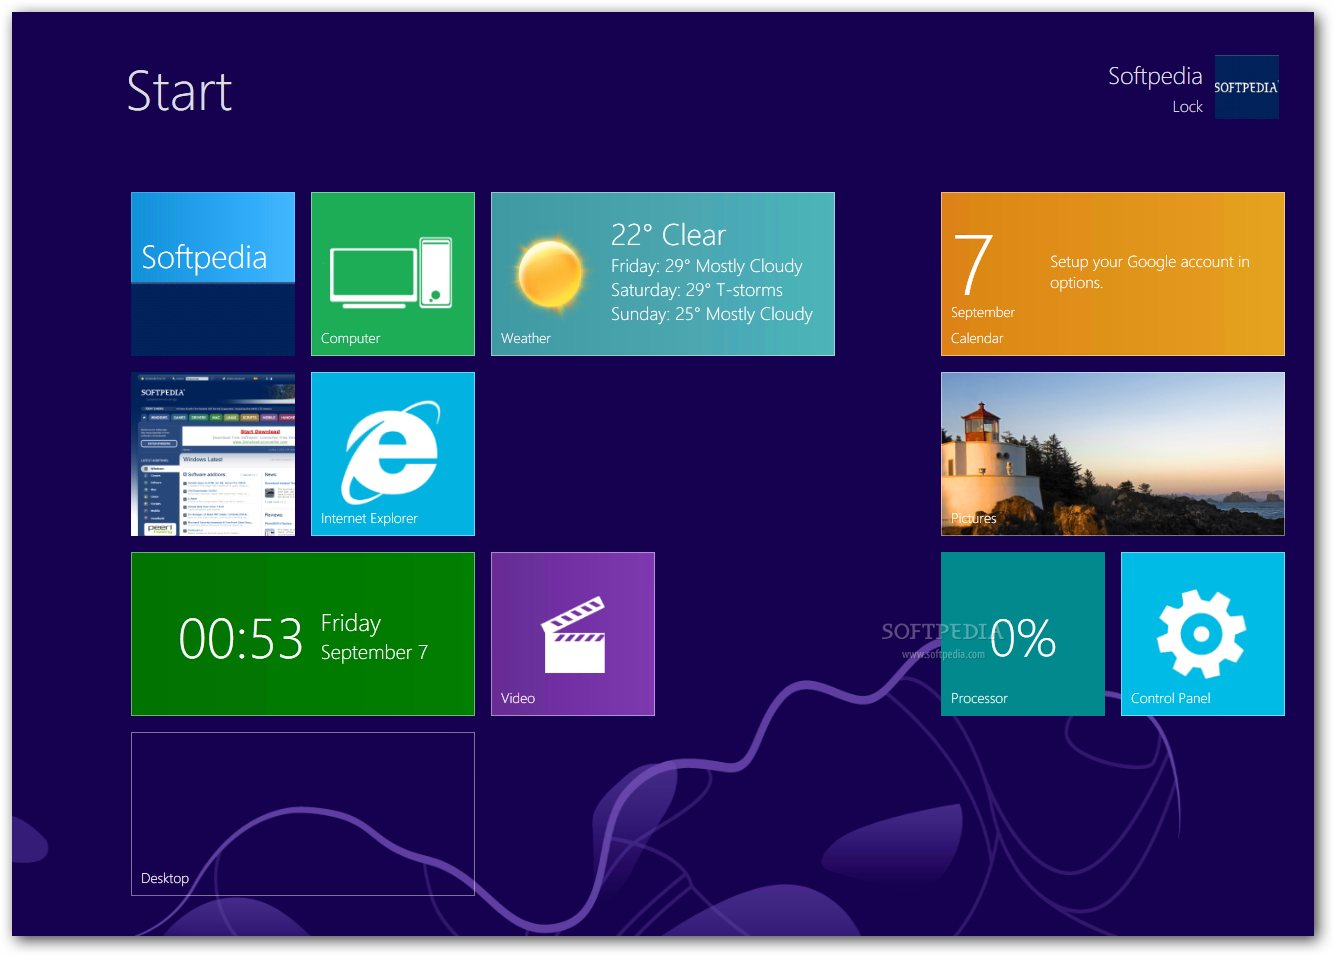 Transformation pack for windows 7 to windows 8.